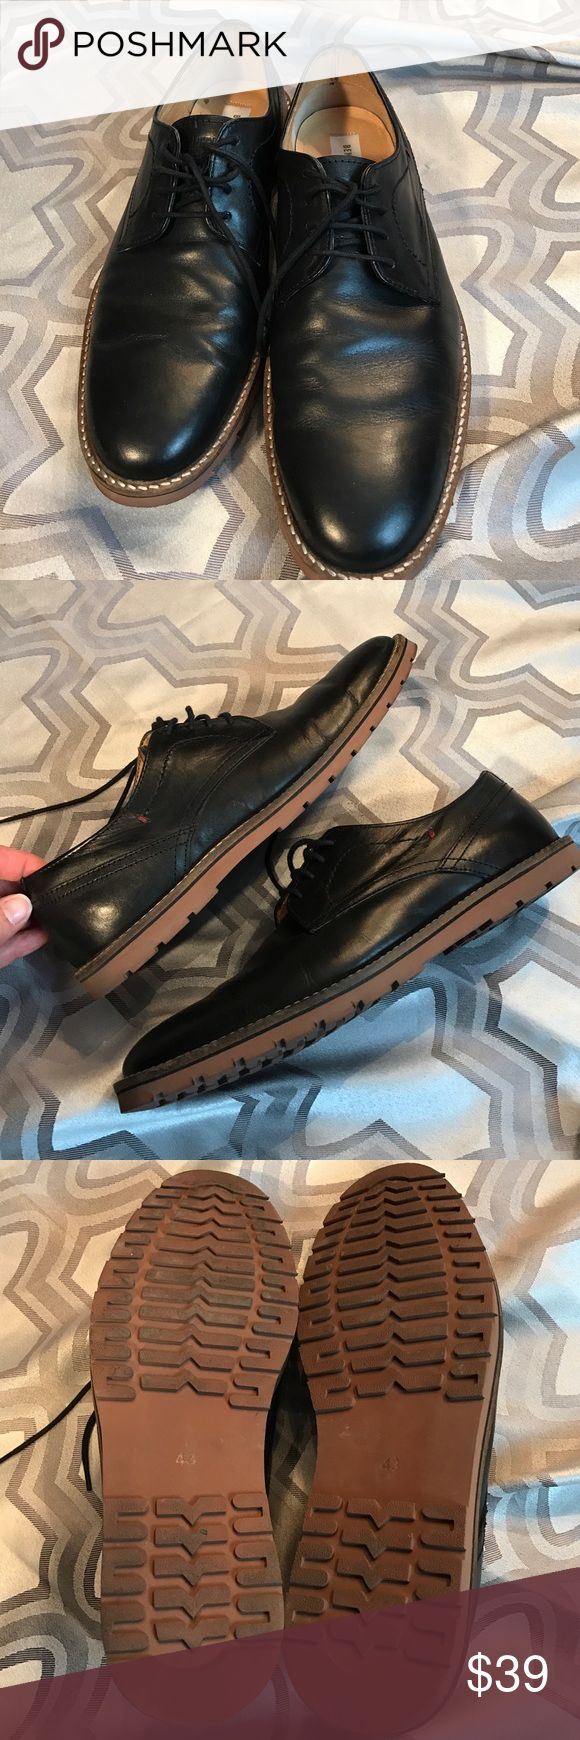 SALE! Ben Sherman sz10 black casual Oxford shoes Excellent used condition Ben Sherman sz10 black casual Oxford shoes...worn only 2x...gray shape...can be dressed up or down... Ben Sherman Shoes Oxfords & Derbys